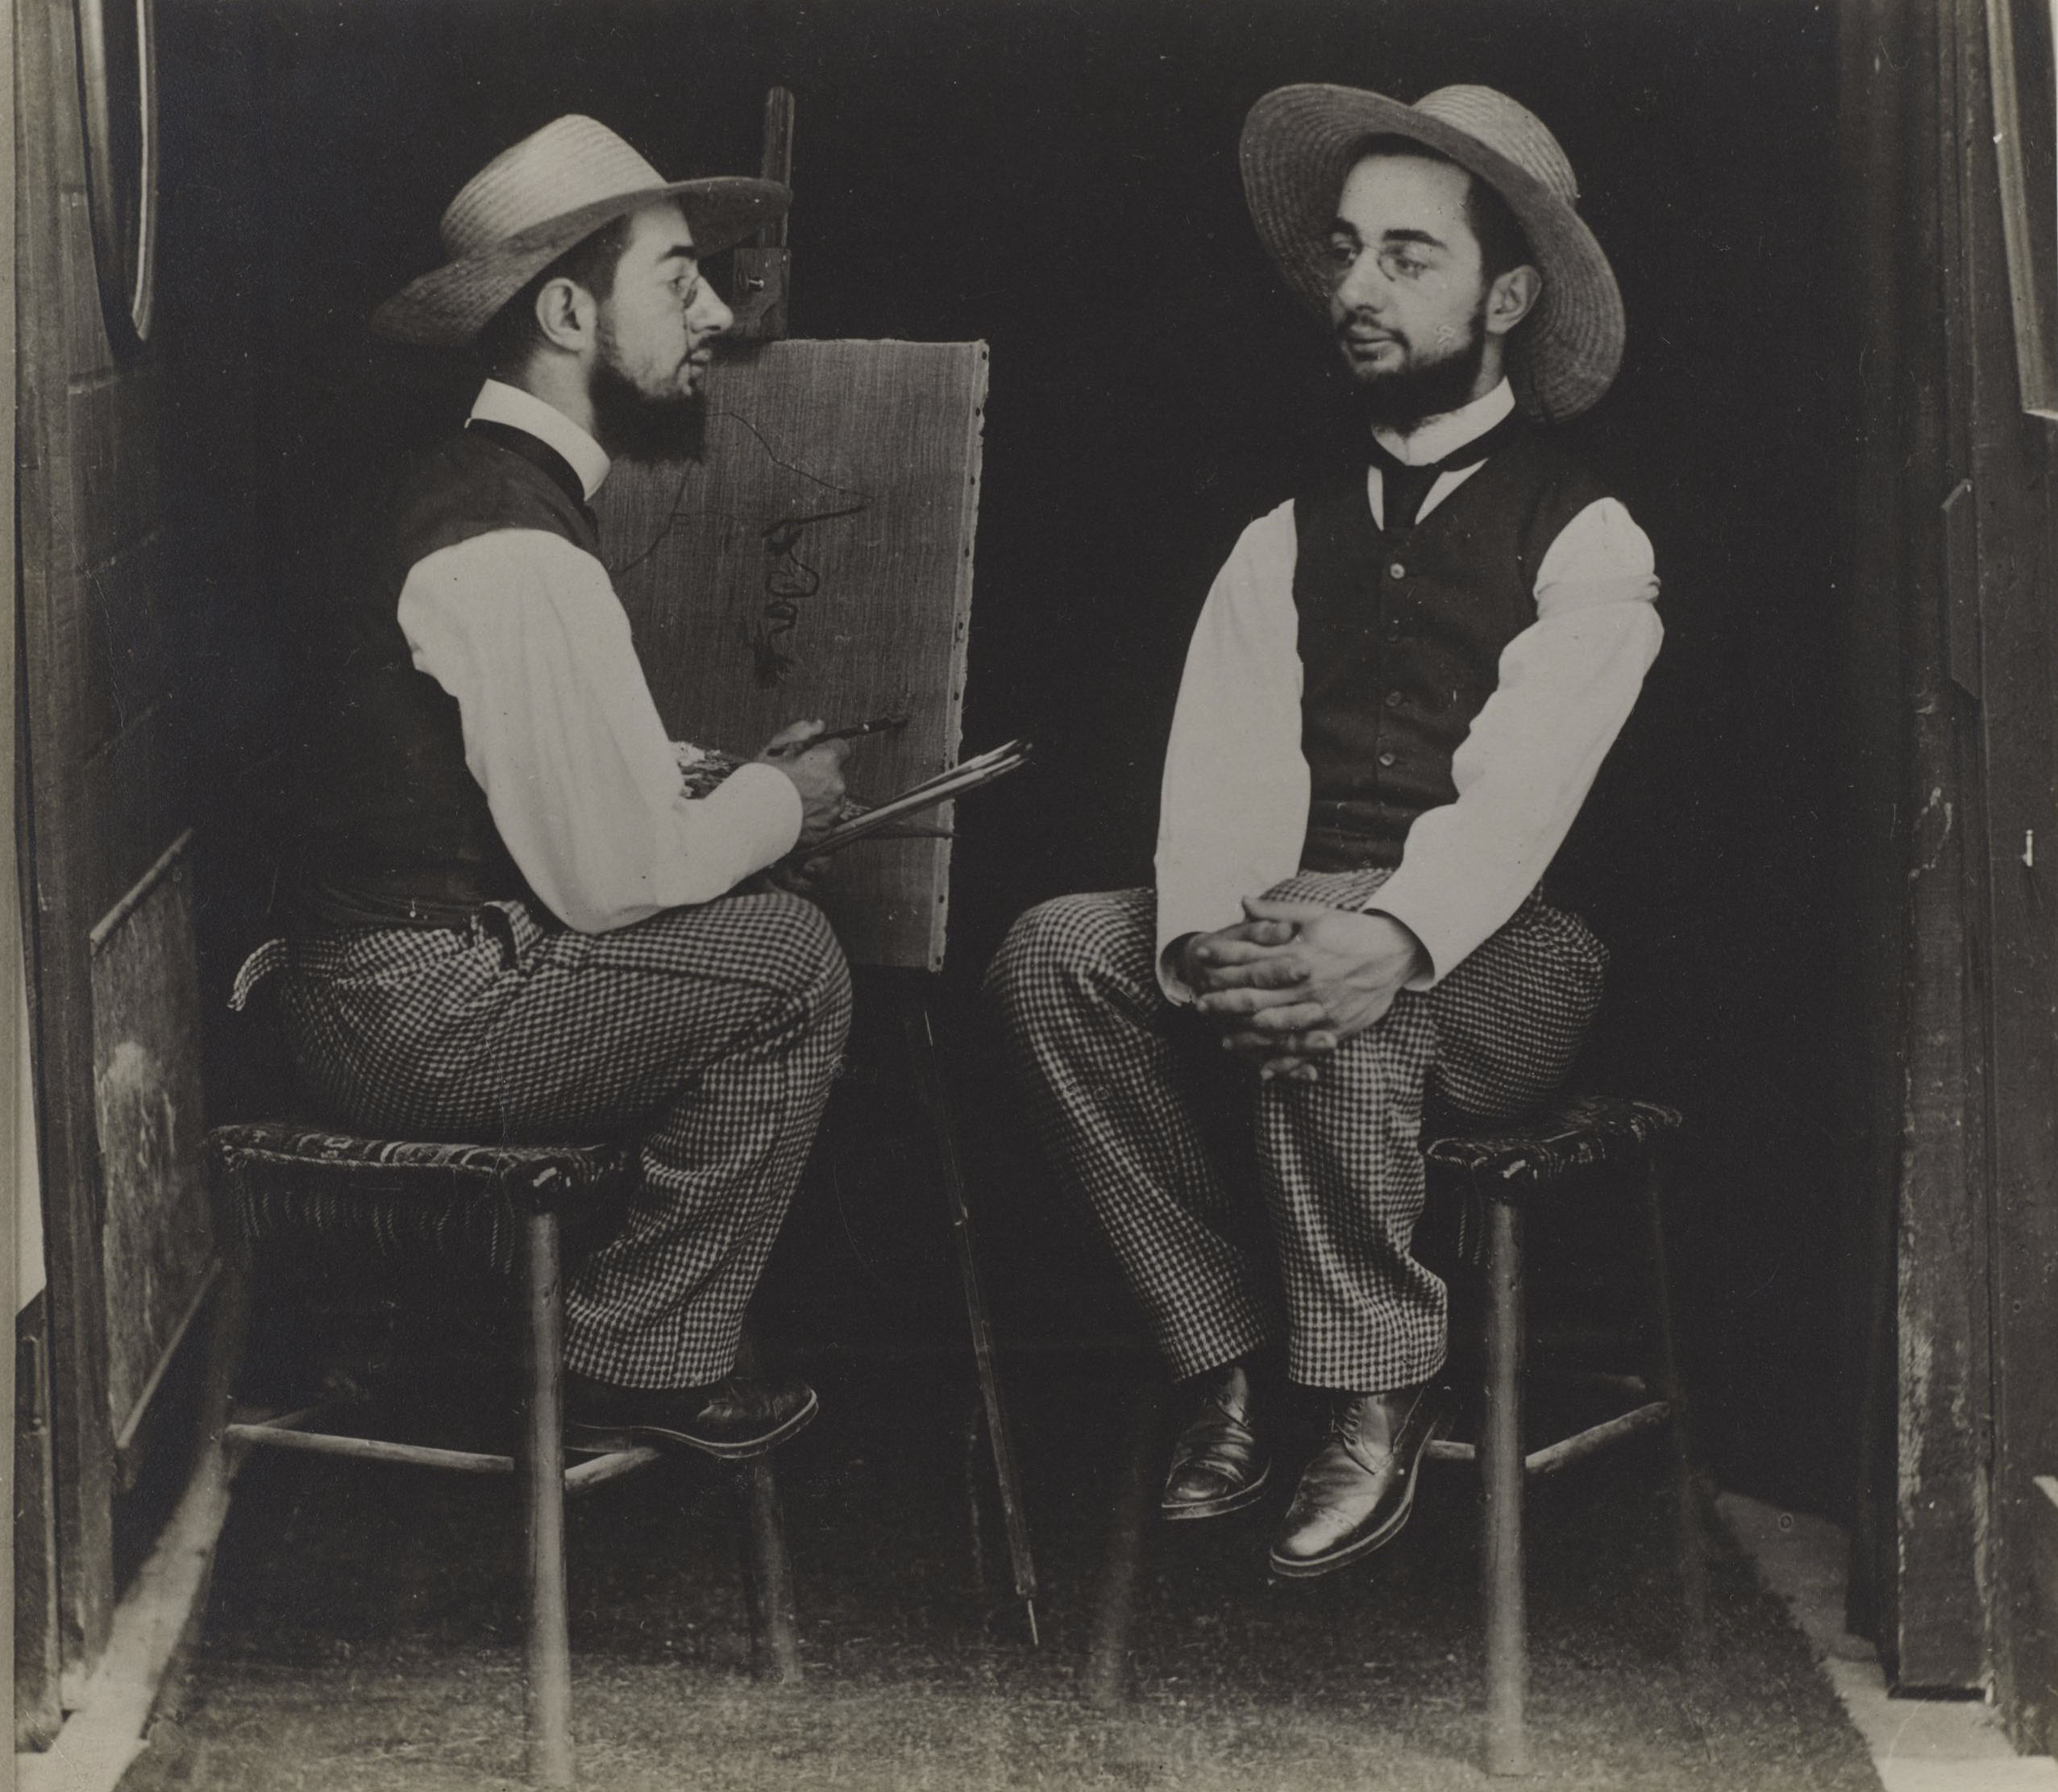 Maurice Guibert, Henri de Toulouse-Lautrec as Artist and Model, c. 1900, gelatin silver print, Philadelphia Museum of Art